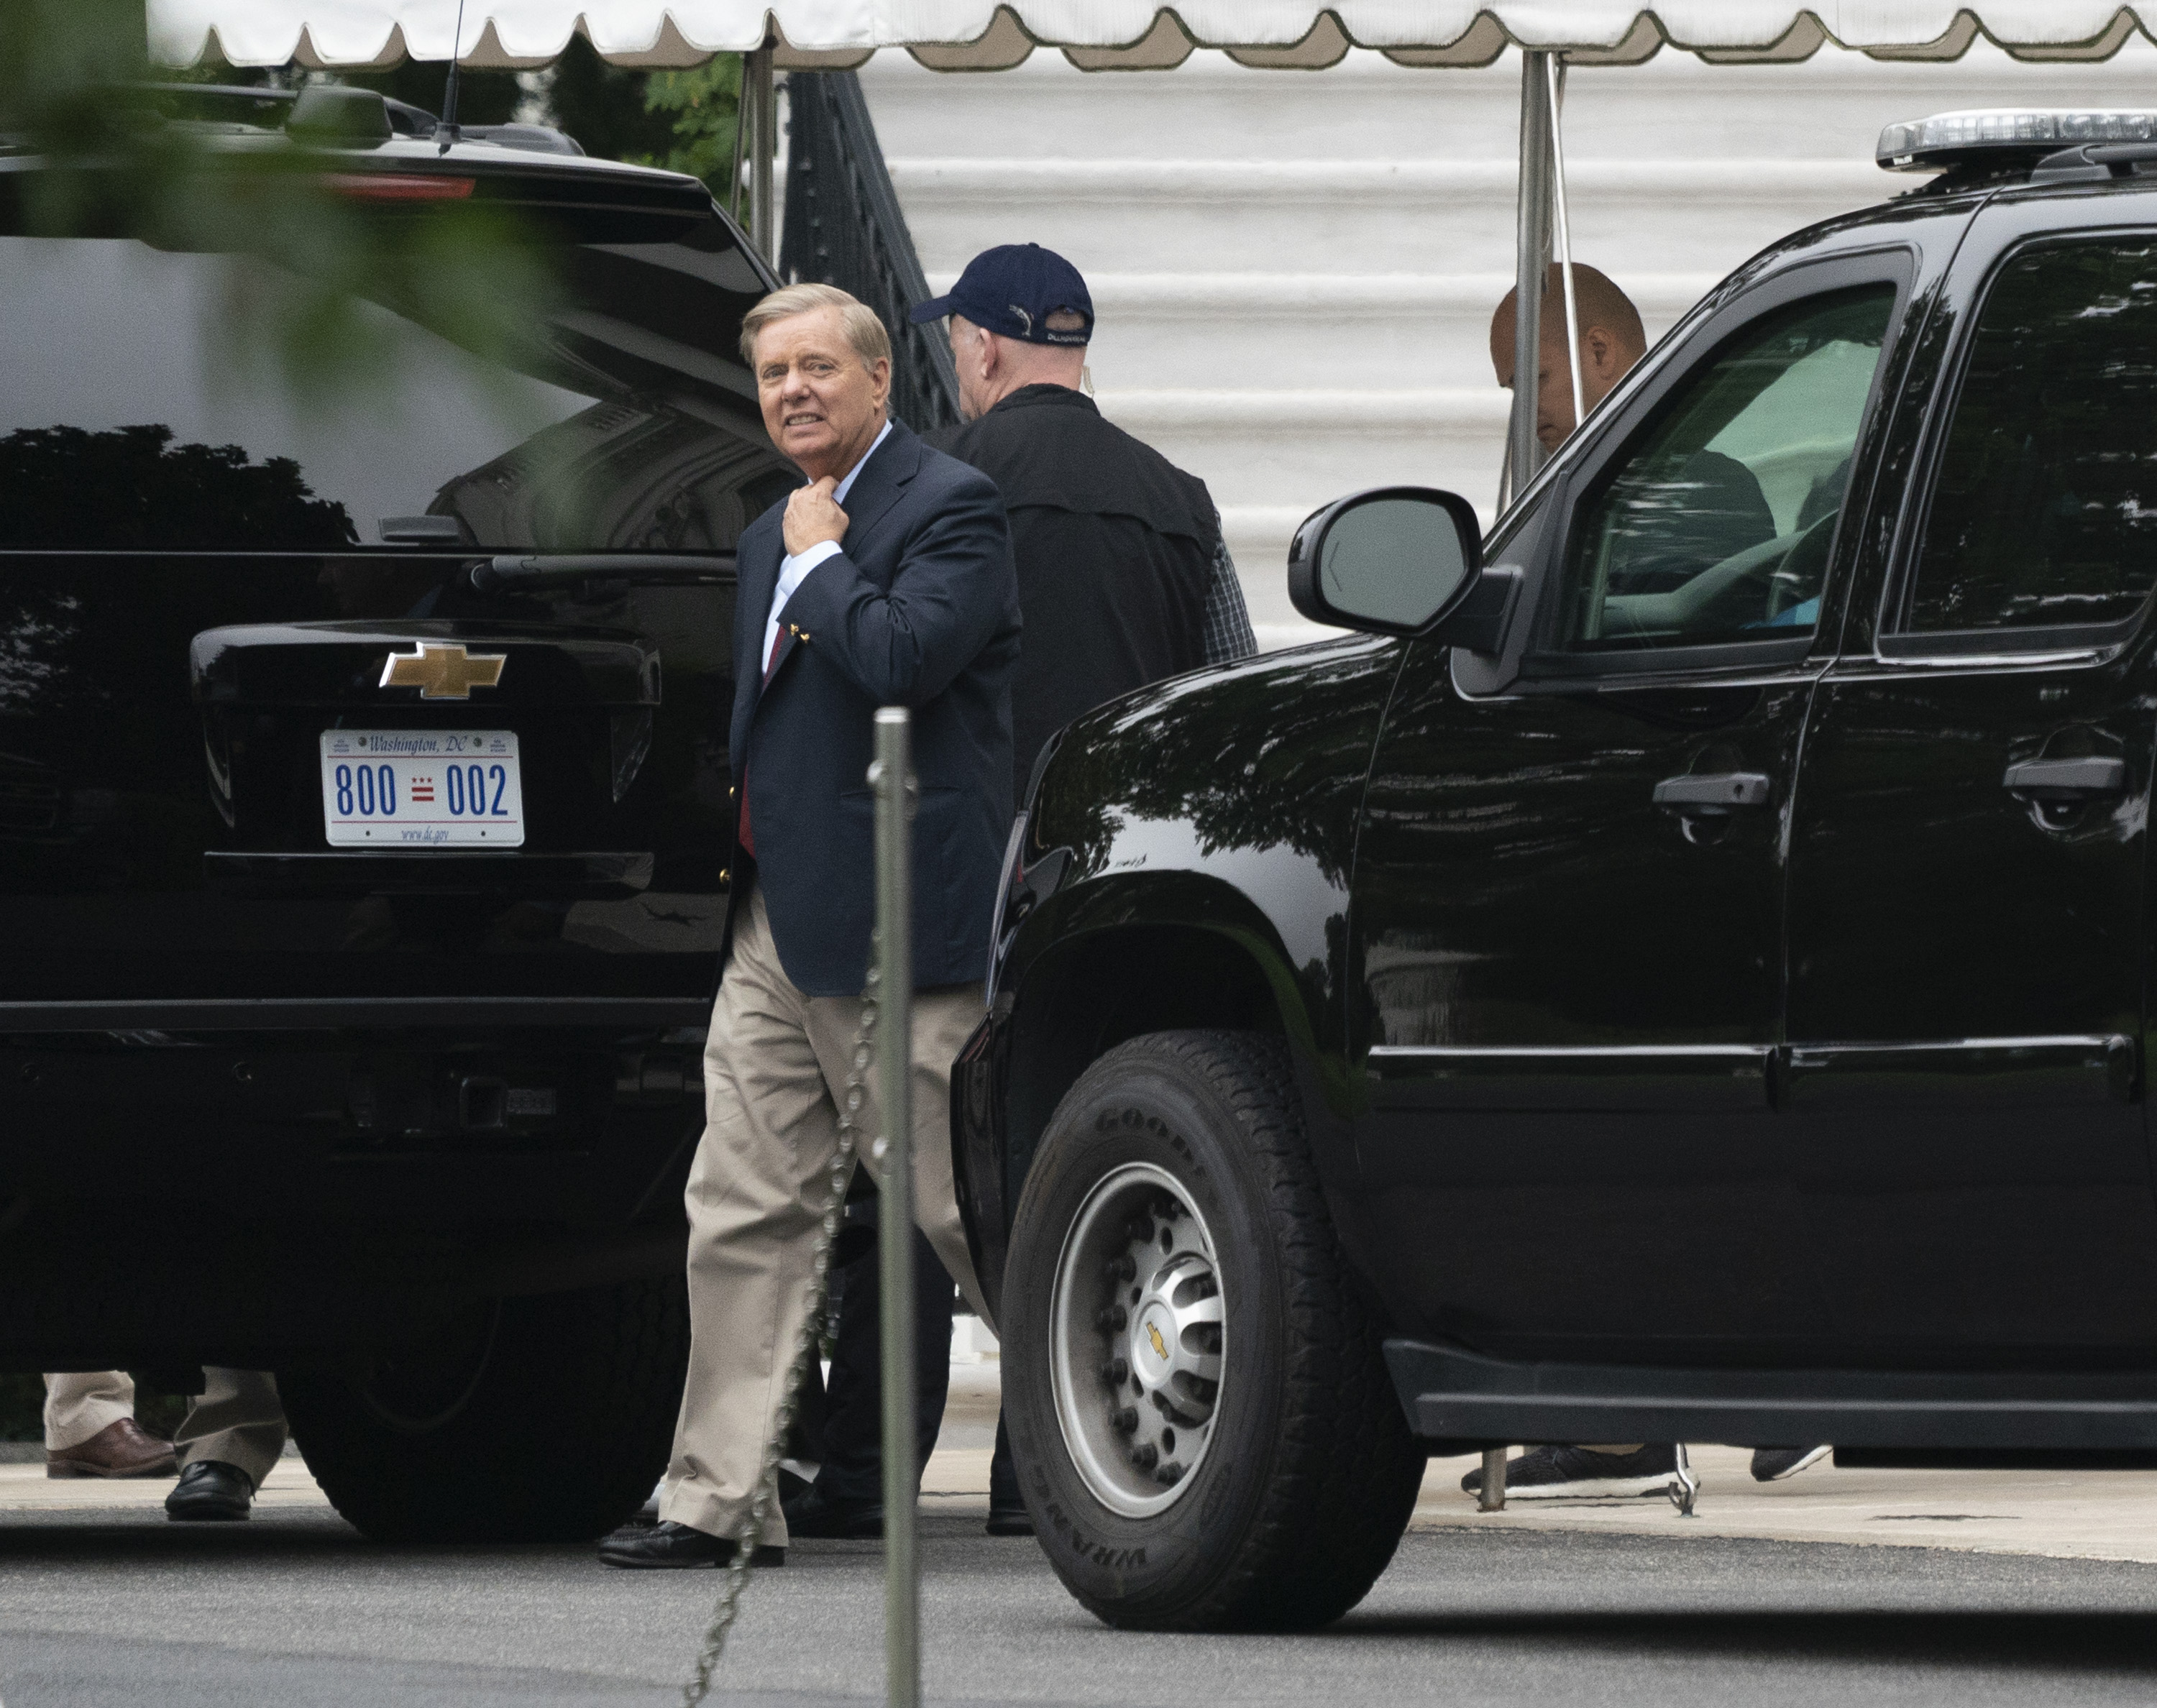 Senator Lindsey Graham (R-SC) boards a motorcade at the White House on October 7, 2018 in Washington, DC. Graham is going golfing at Trump National Goff Course with U.S. President Donald Trump in Sterling, Virginia. (Kleponis-Pool/Getty Images)